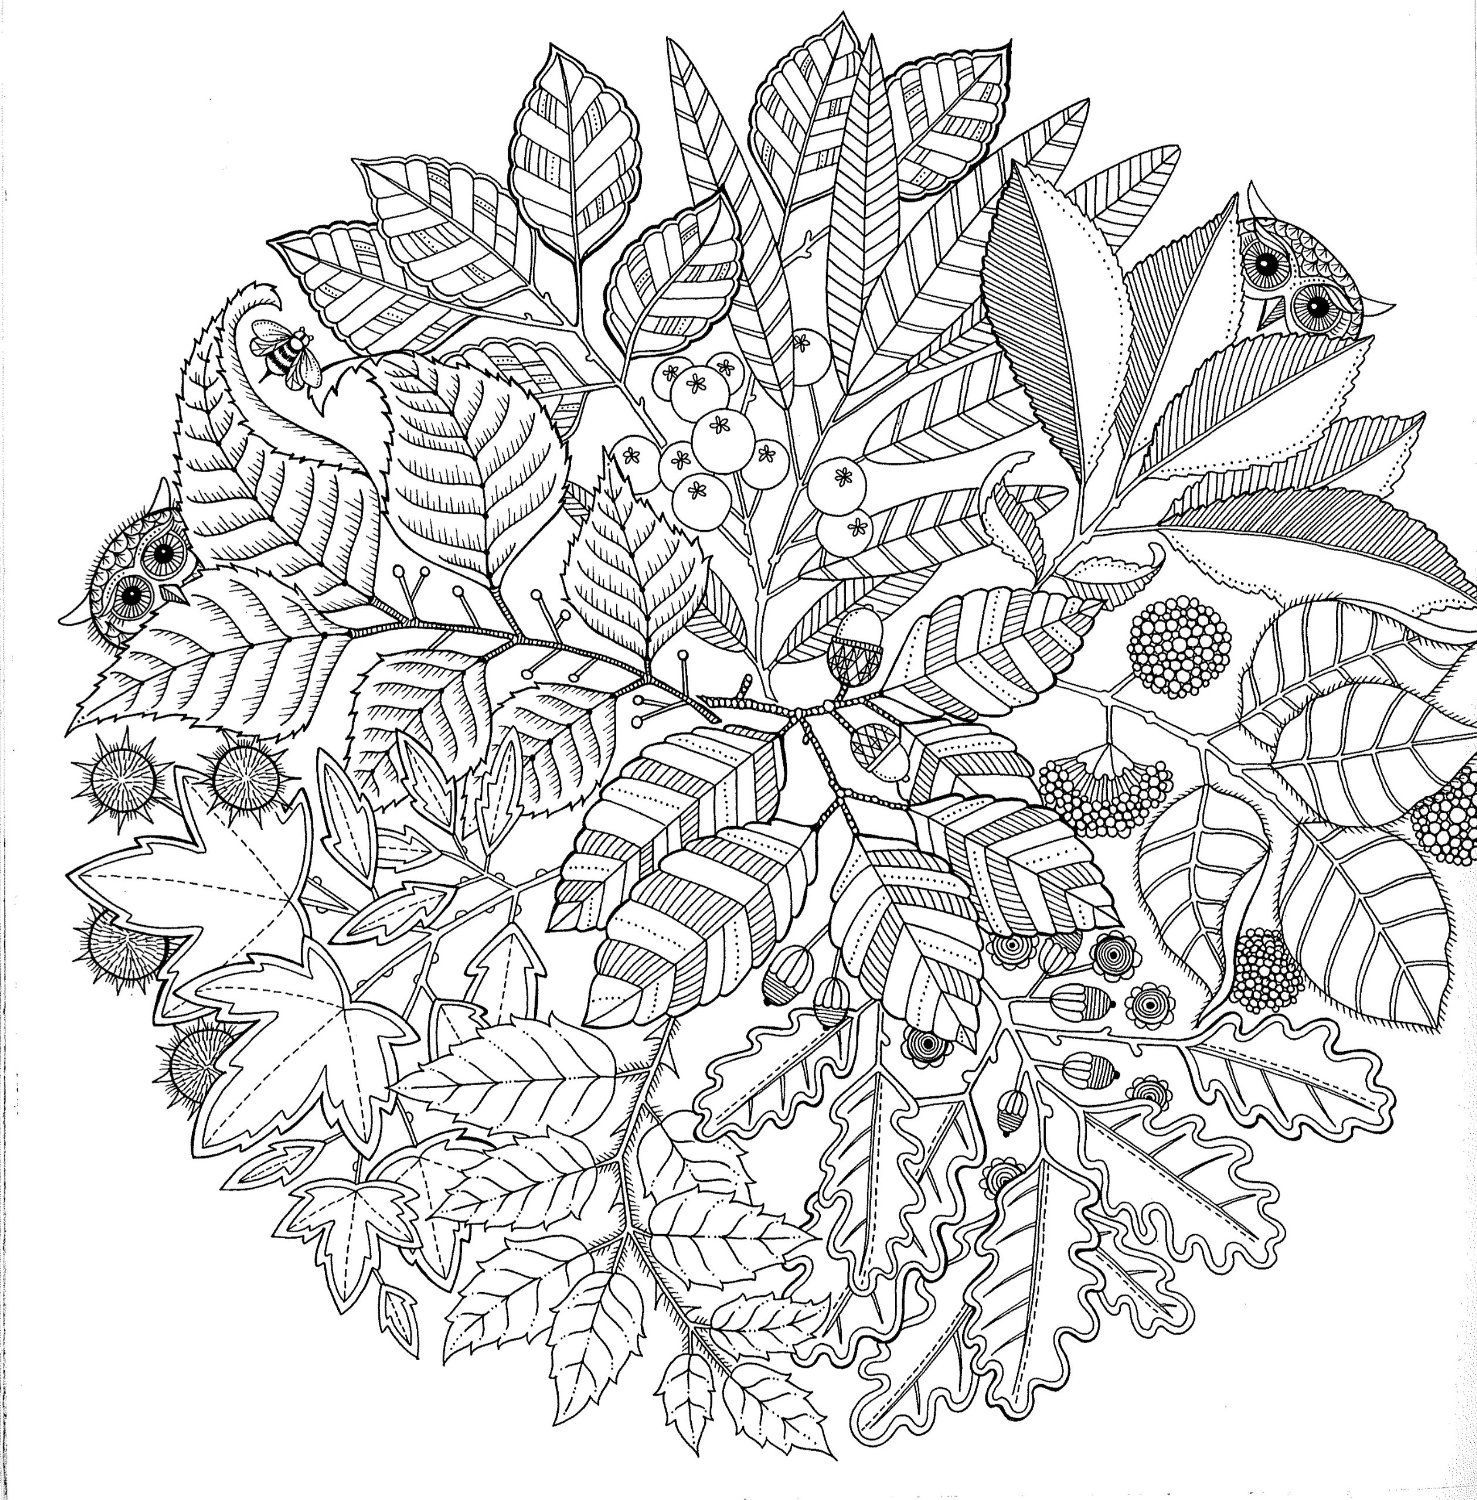 Coloriage Anti Stress Automne.Secret Garden French Colouring Book To Alleviate Stress